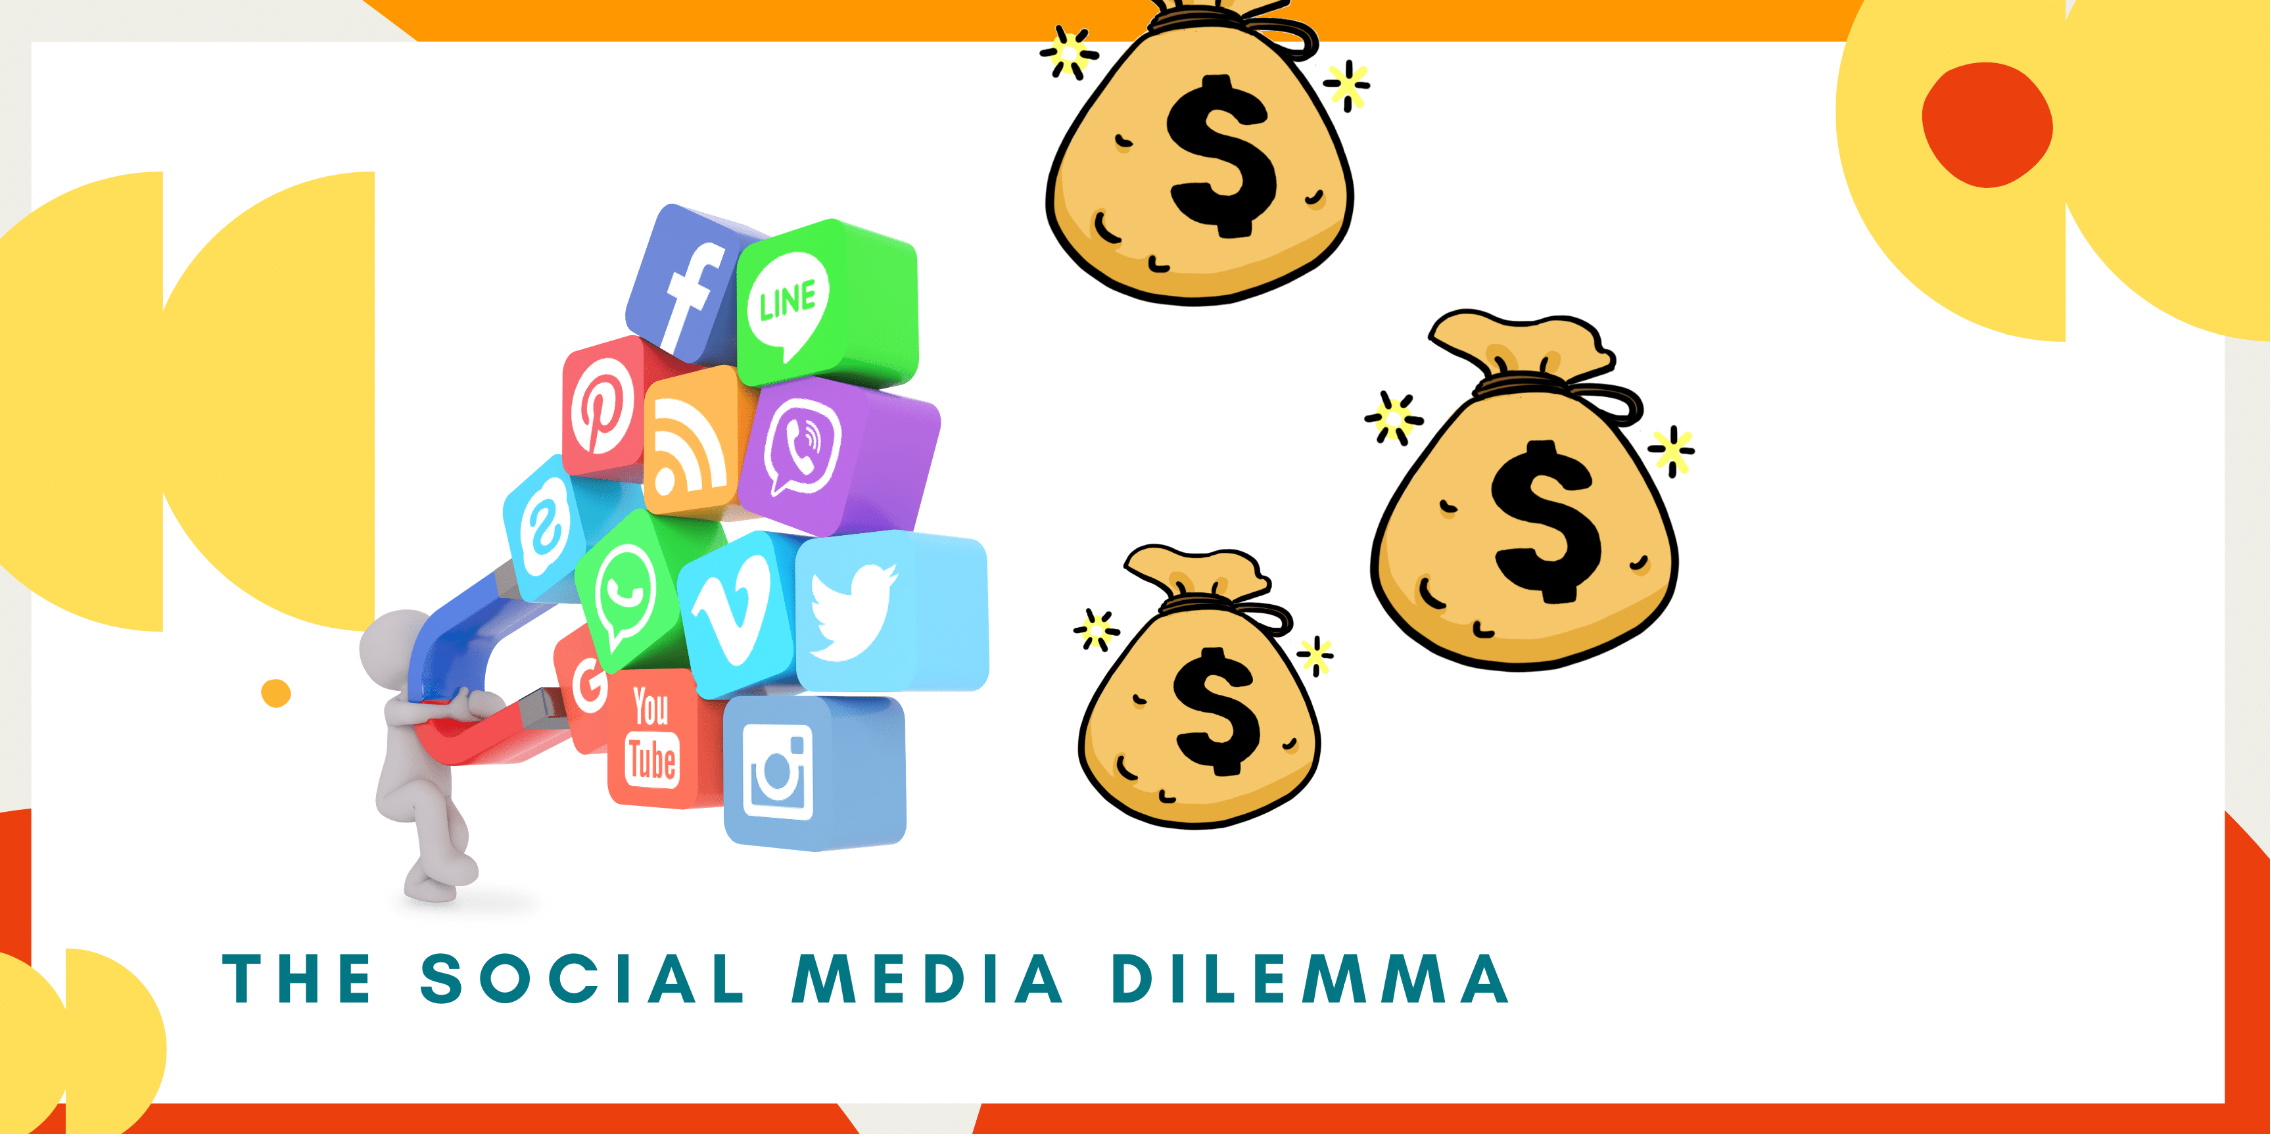 The Social Dilemma. How have current social media platforms used their users to make a profit and why does it have to change?